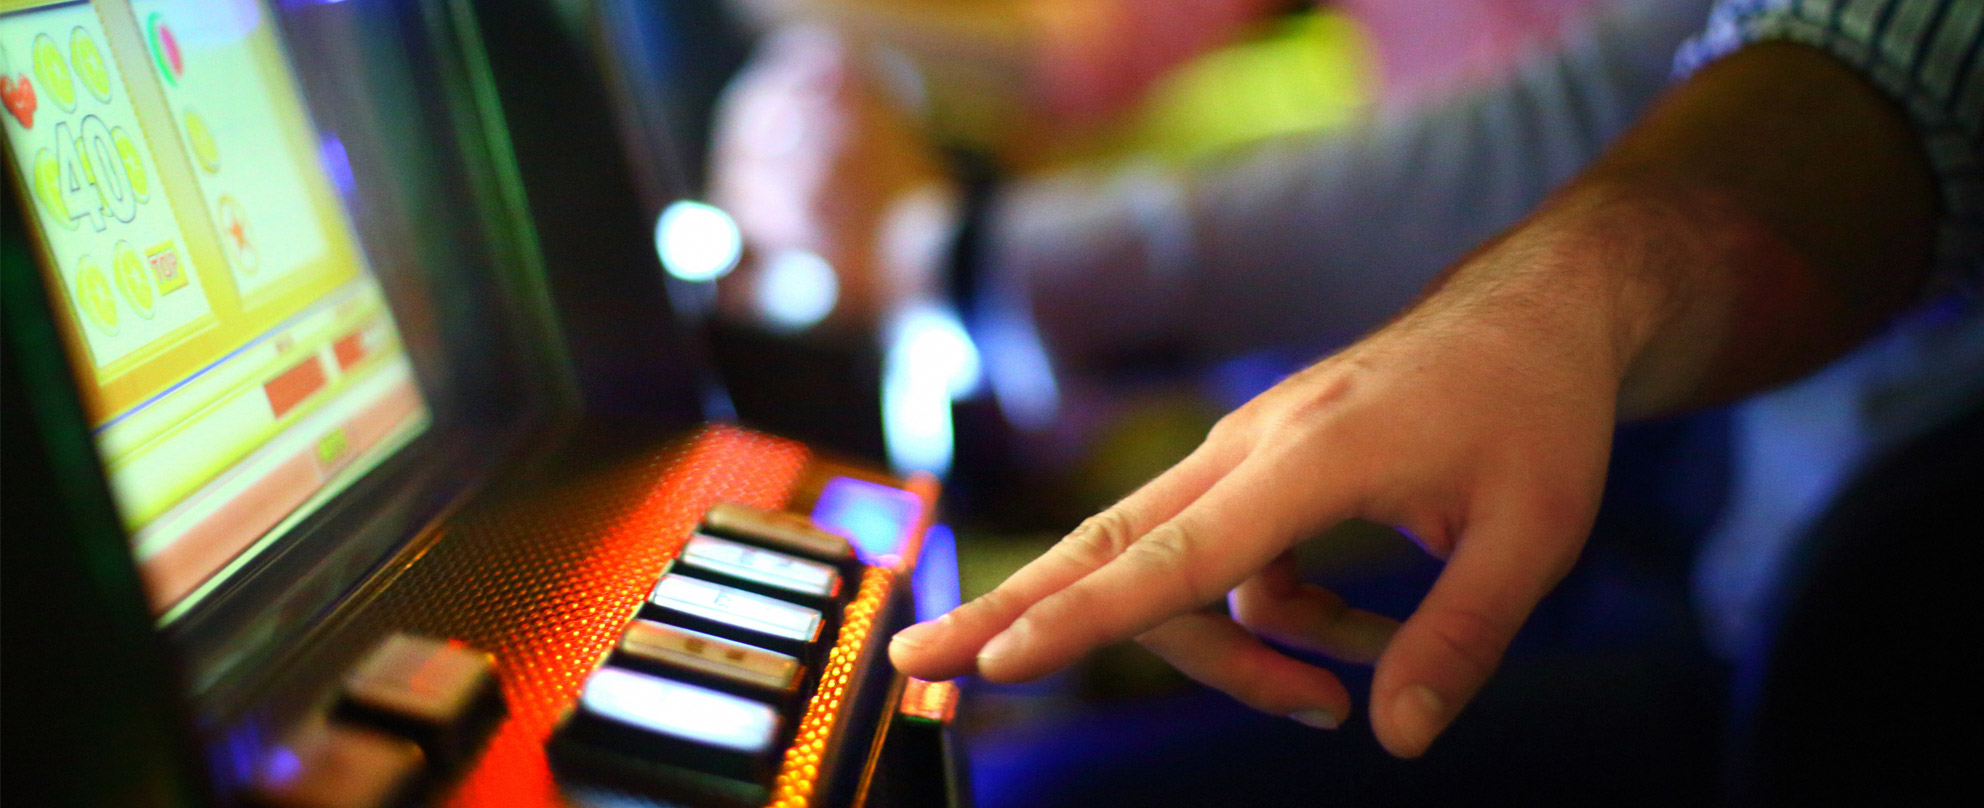 Close up of a man's hand about to press a button on a brightly-lit poker machine.